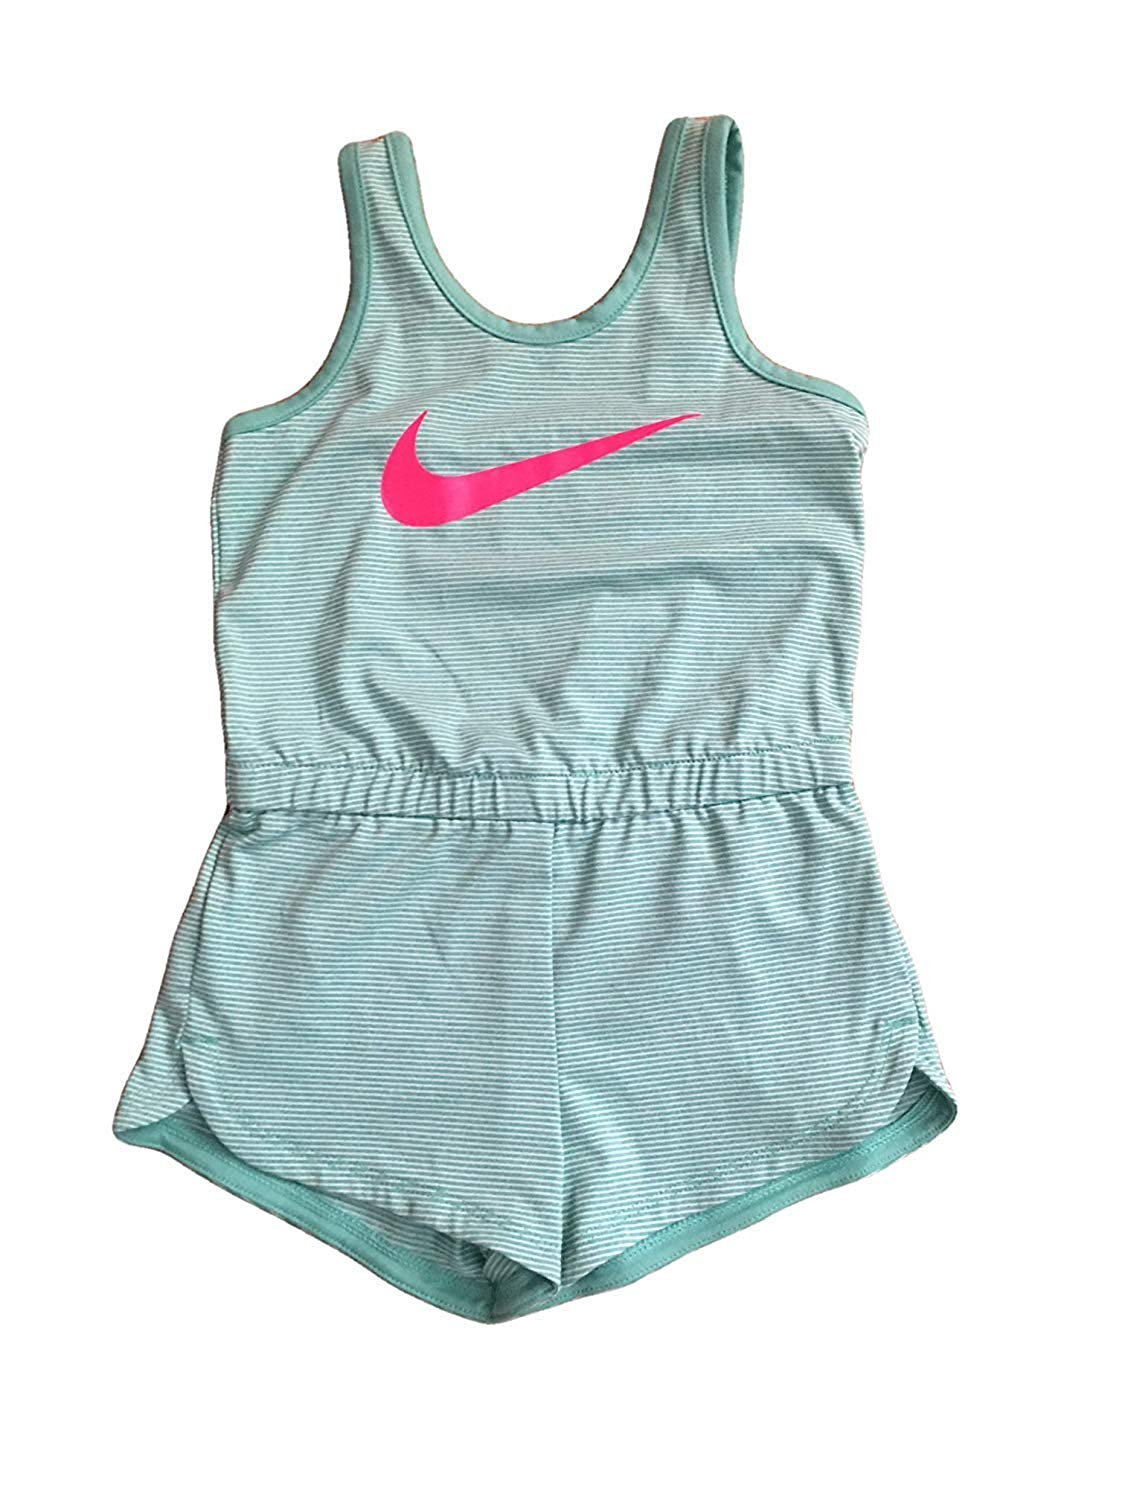 Toddler Girl:NIKE Dri-Fit Sports Romper Dark - Baby Clothes, Baby